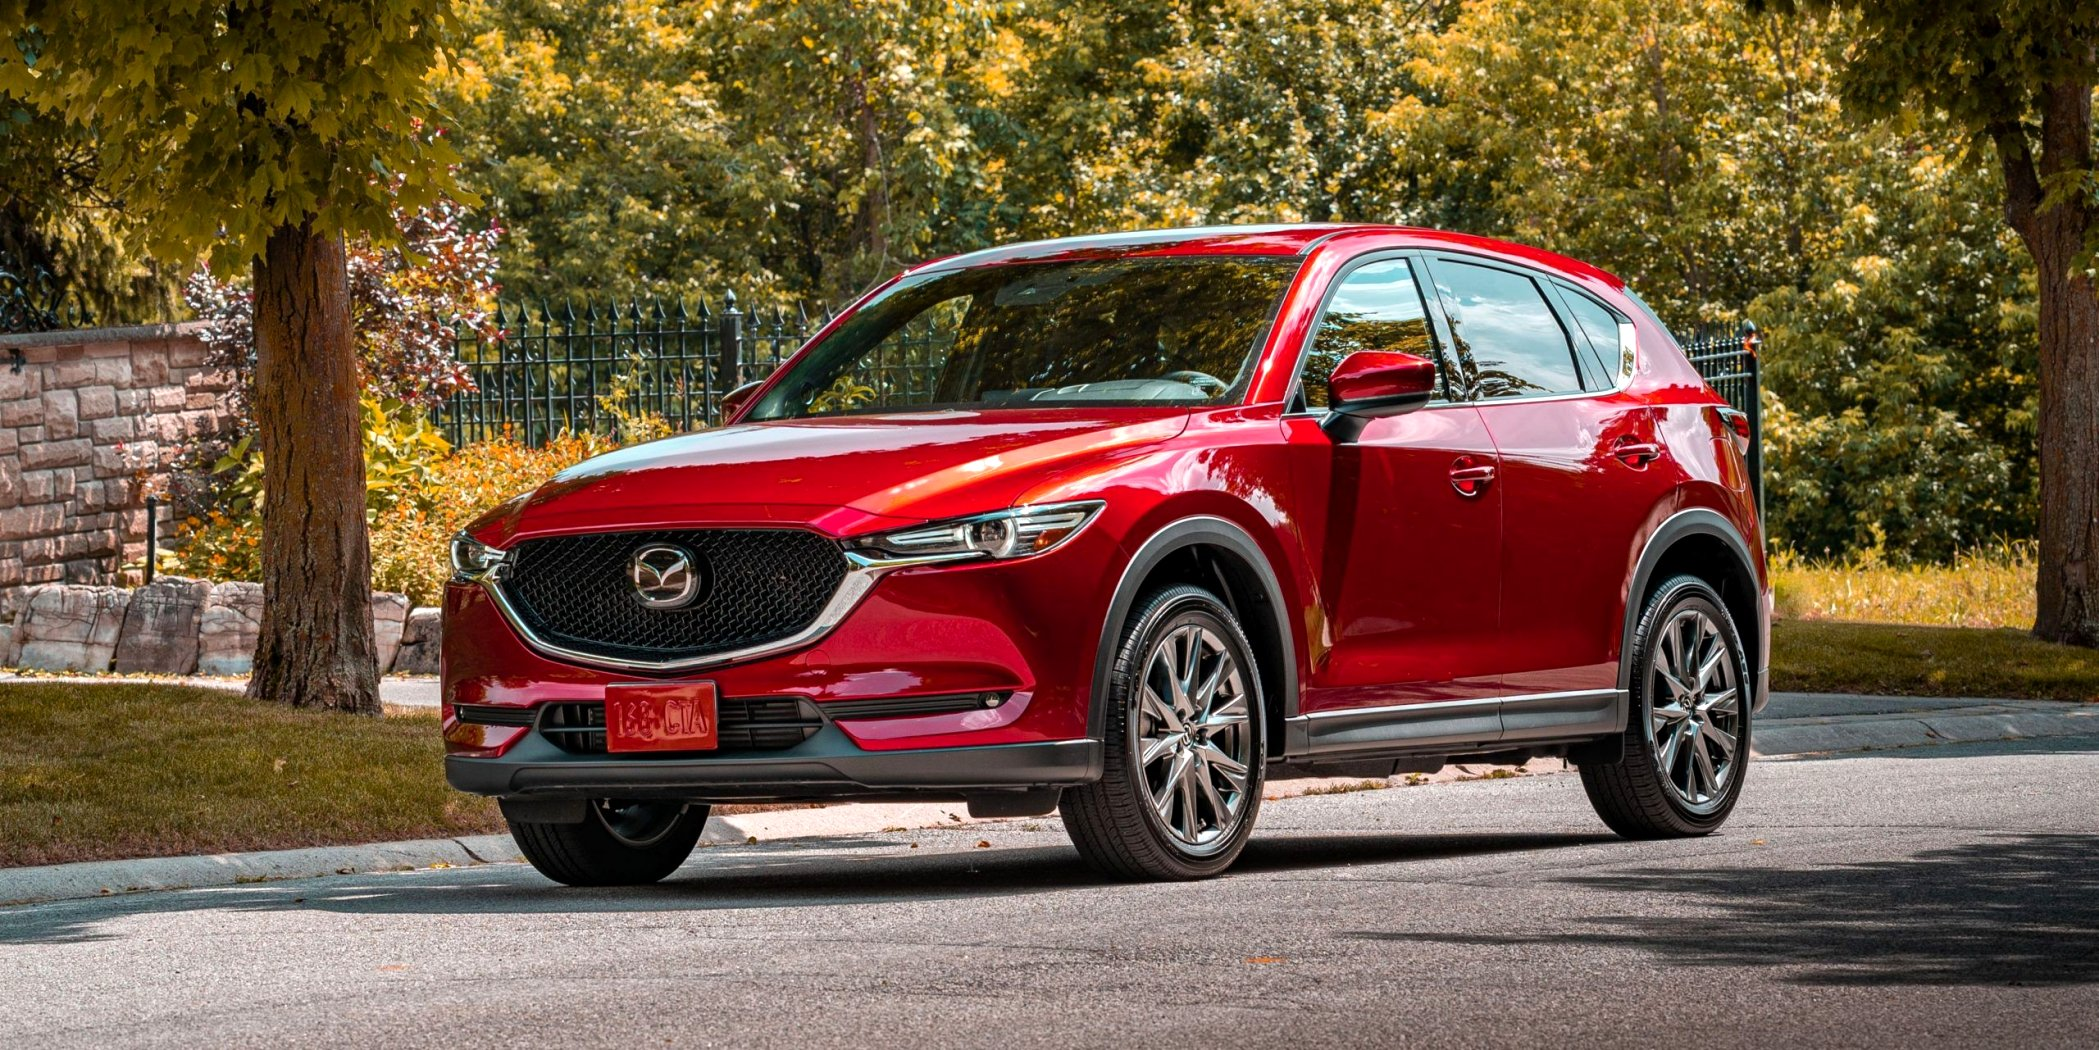 2020 mazda price list Ratings